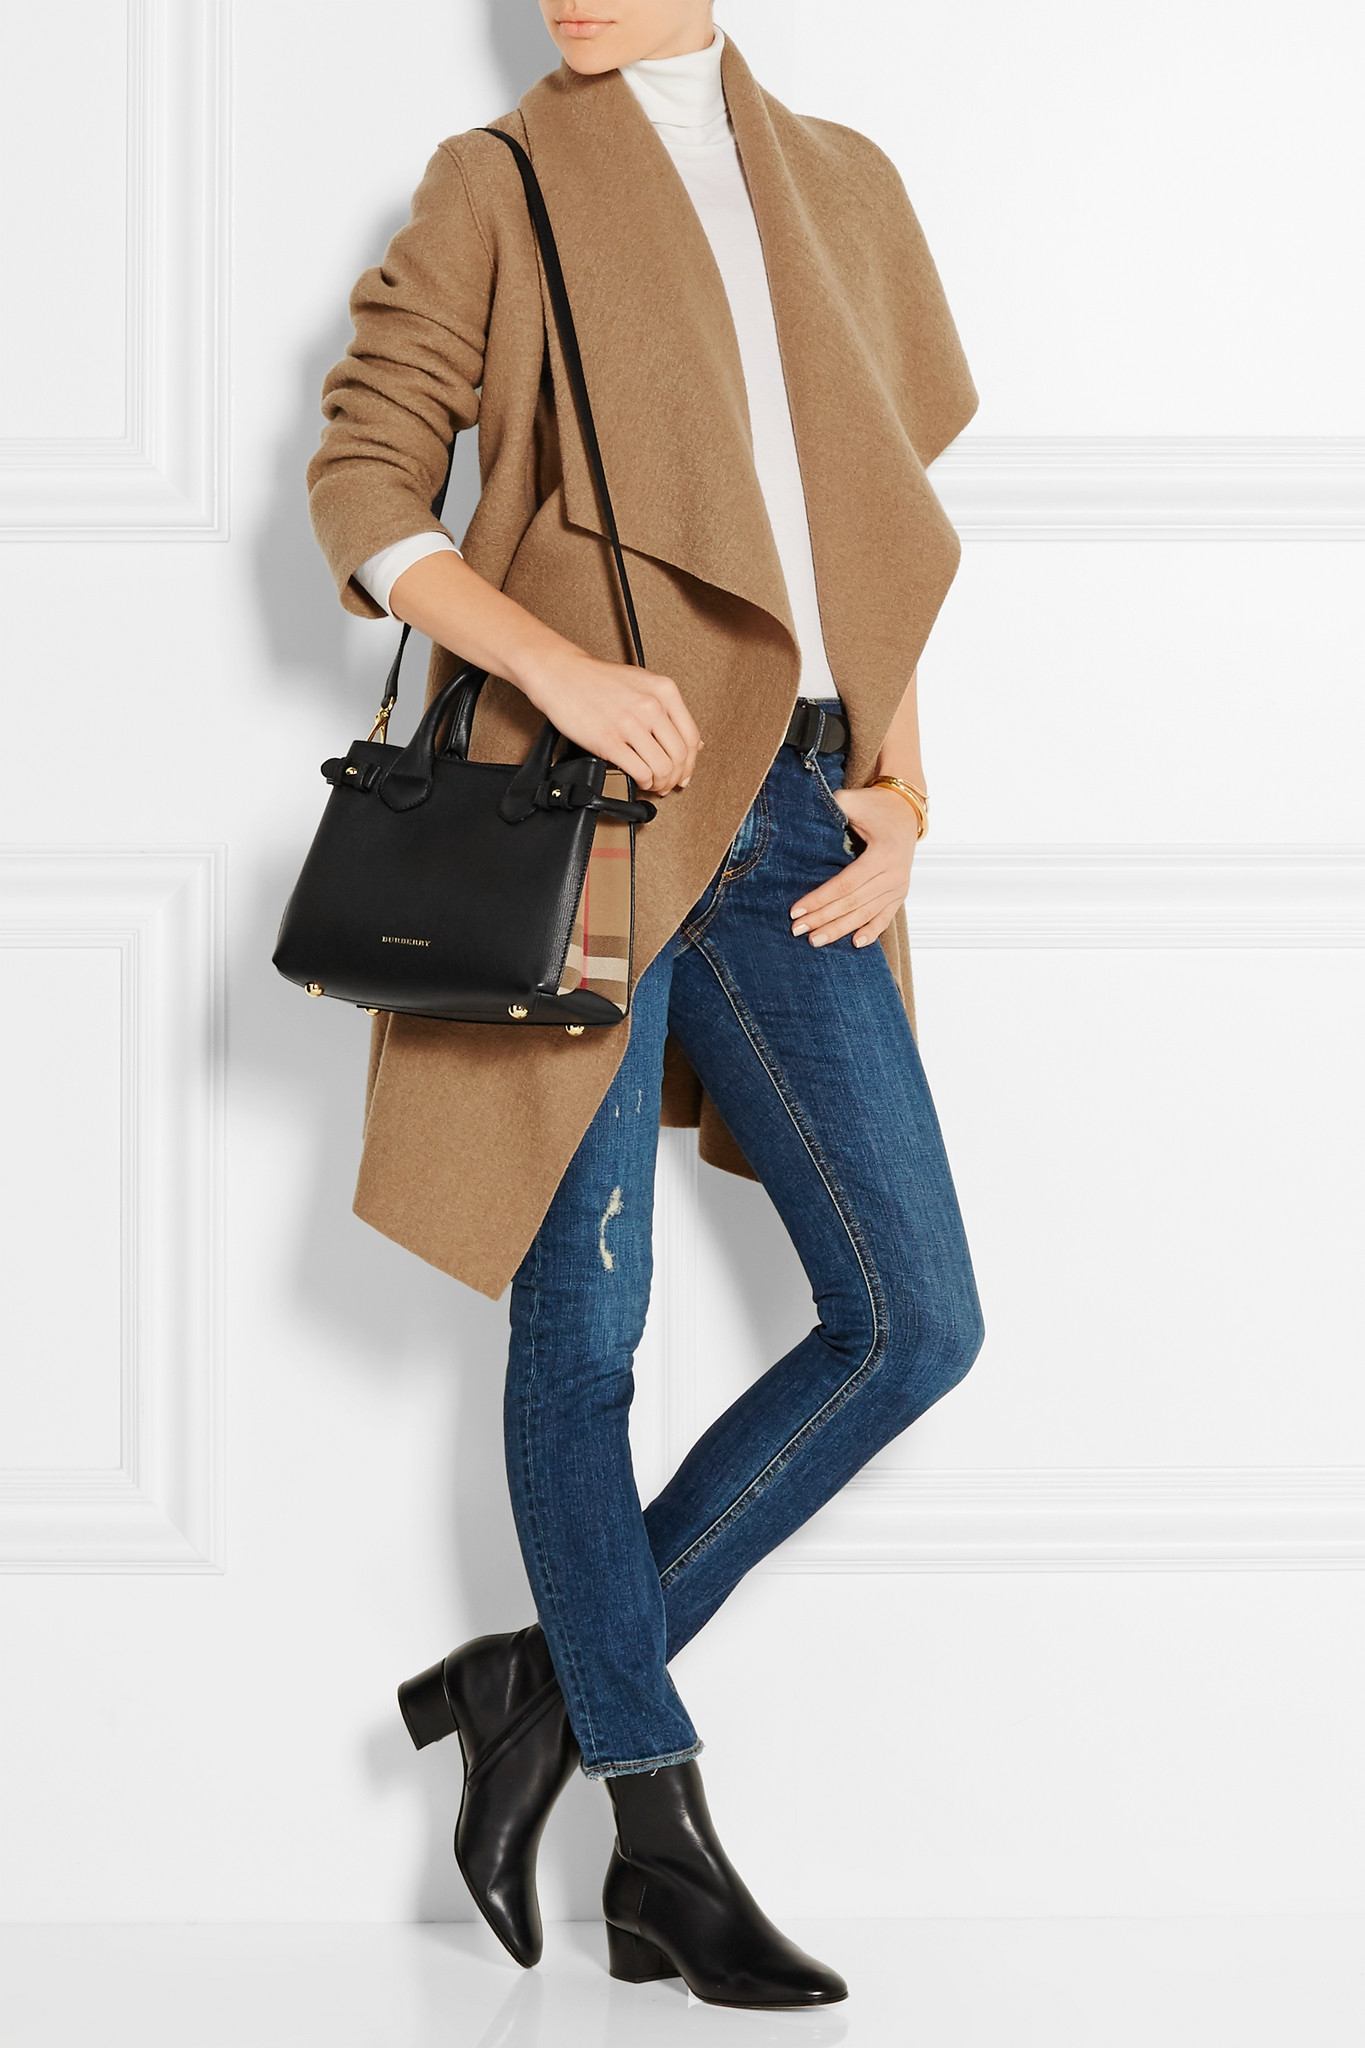 Lyst - Burberry London Small Checked Canvas-paneled Textured-leather ... a6050b54c4